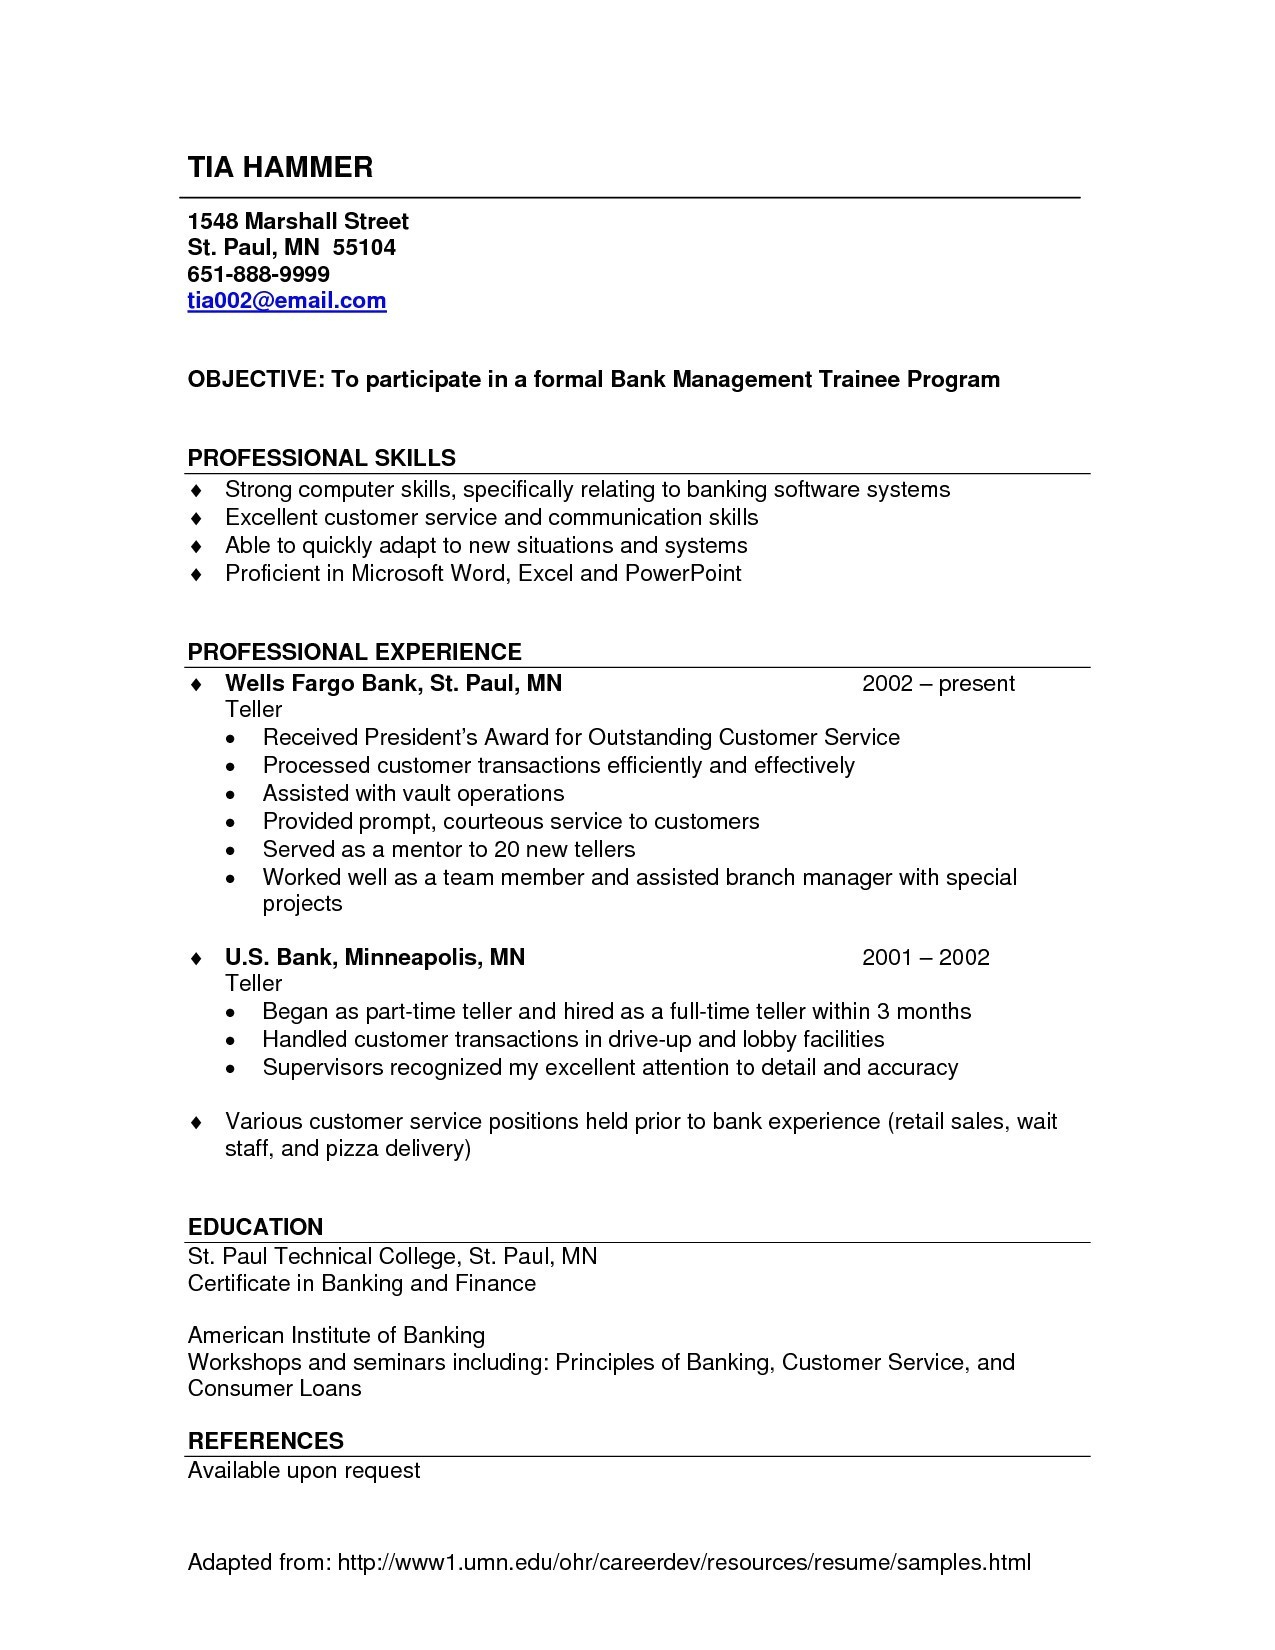 Food Service Skills for Resume - Food Service Skills for Resume Elegant Server Skills Resume Resume